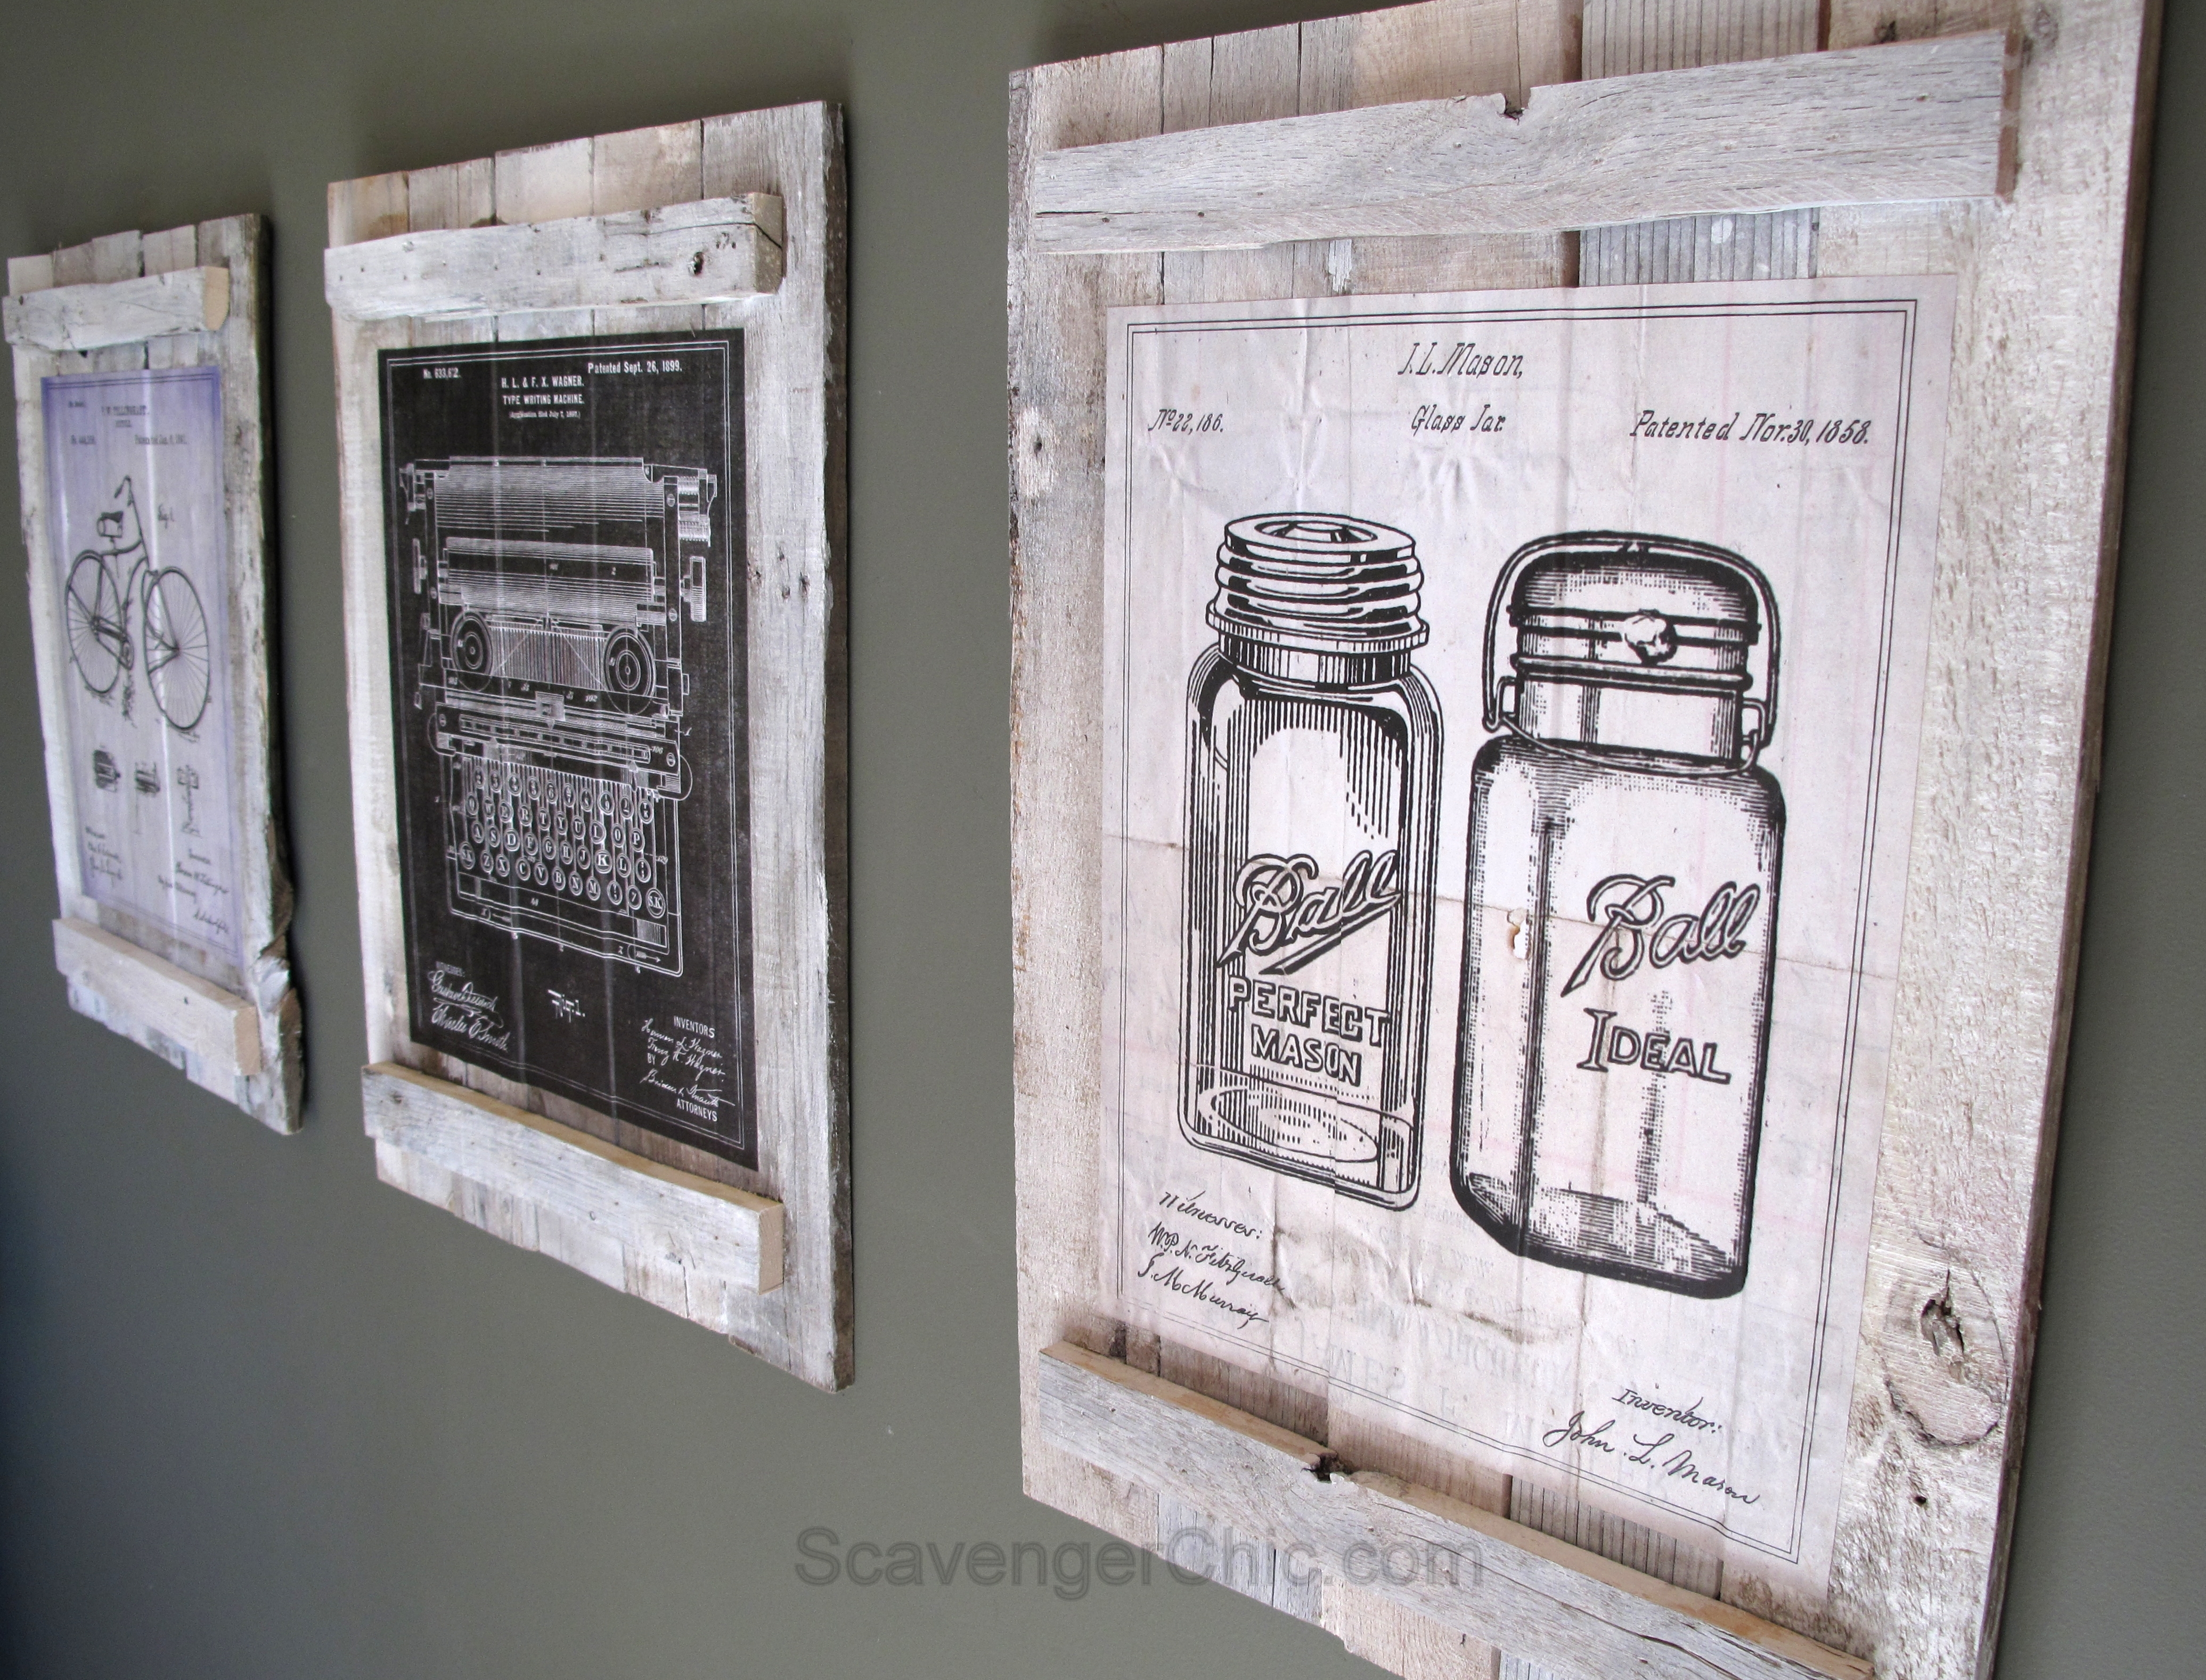 Pallets And Calendars Diy Wall Art – Scavenger Chic Inside Most Recent Vintage Wall Art (View 5 of 15)